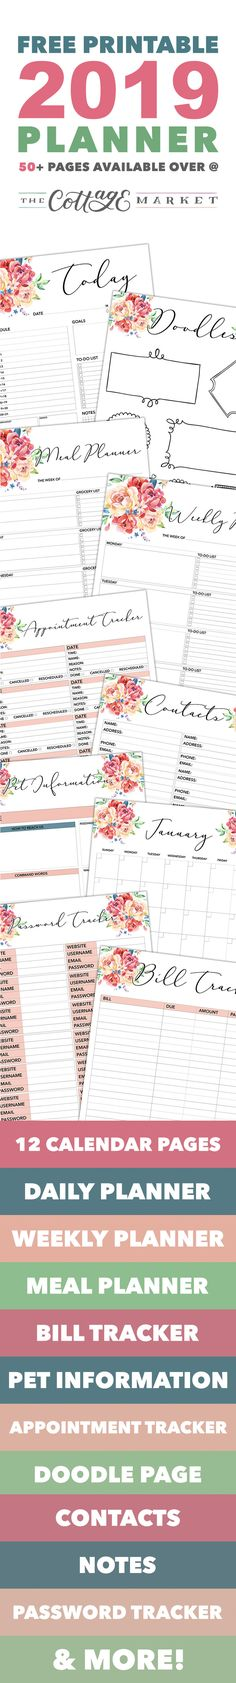 Free Printable 2019 Planner 50 Plus Printable Pages! - The Cottage Market - - Come on in and snatch up your Free Printable 2018 Planner 50 Plus Printable Pages! You will find everything you need to get organized for the new year! 2018 Planner, Free Planner, Happy Planner, Planner Tips, Bill Planner, Student Planner, Free Printable Planner Stickers, Free Printables, Freebies Printable